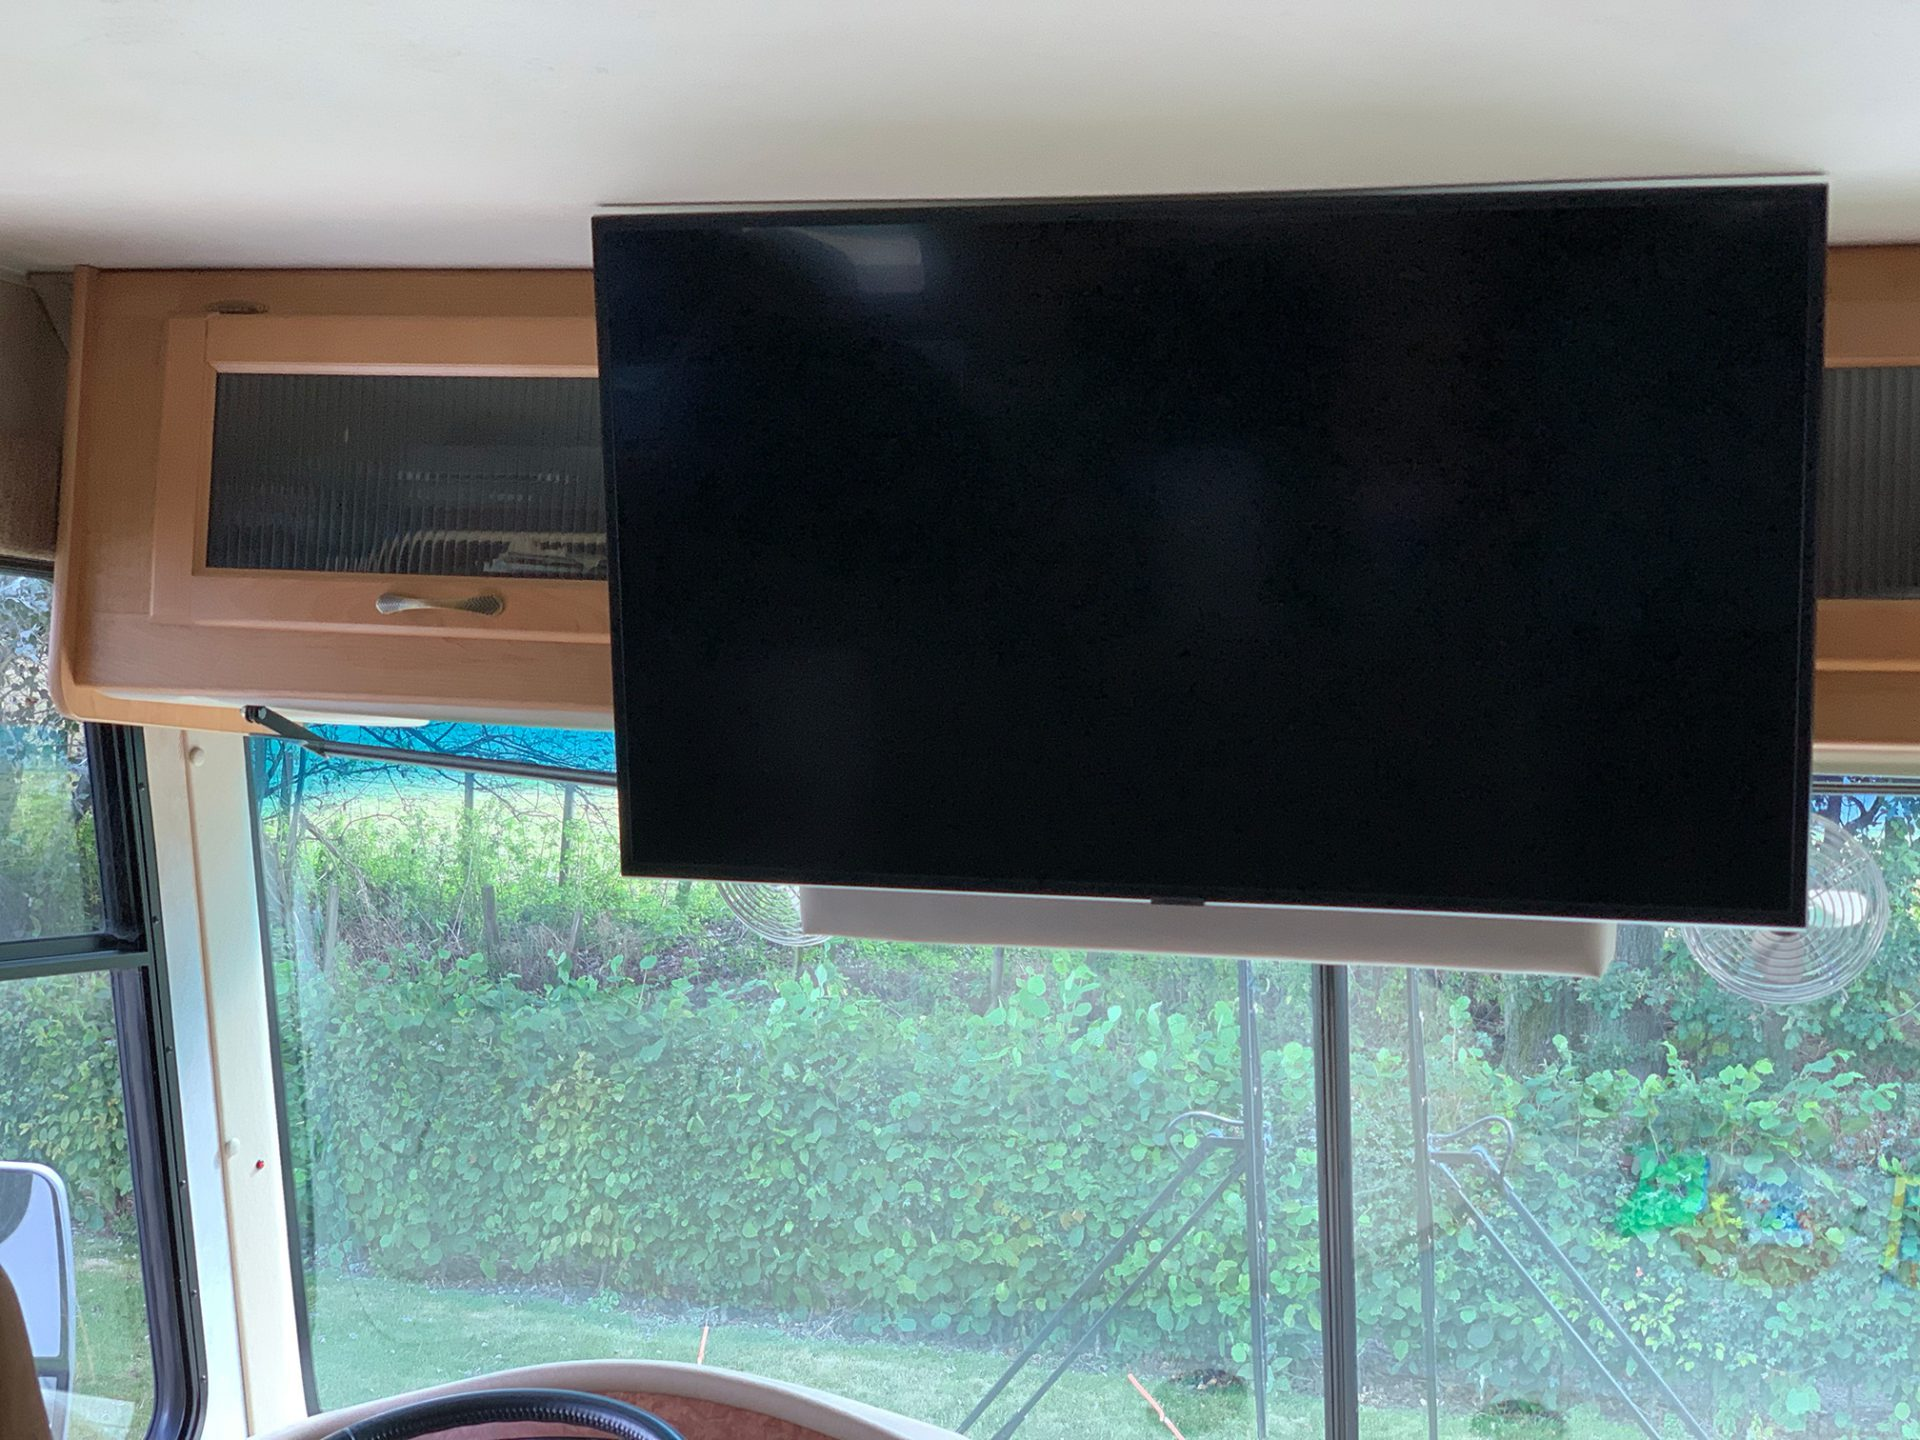 The TV is moved up close to the ceiling, showing that it doesn't hang low under the cupboards